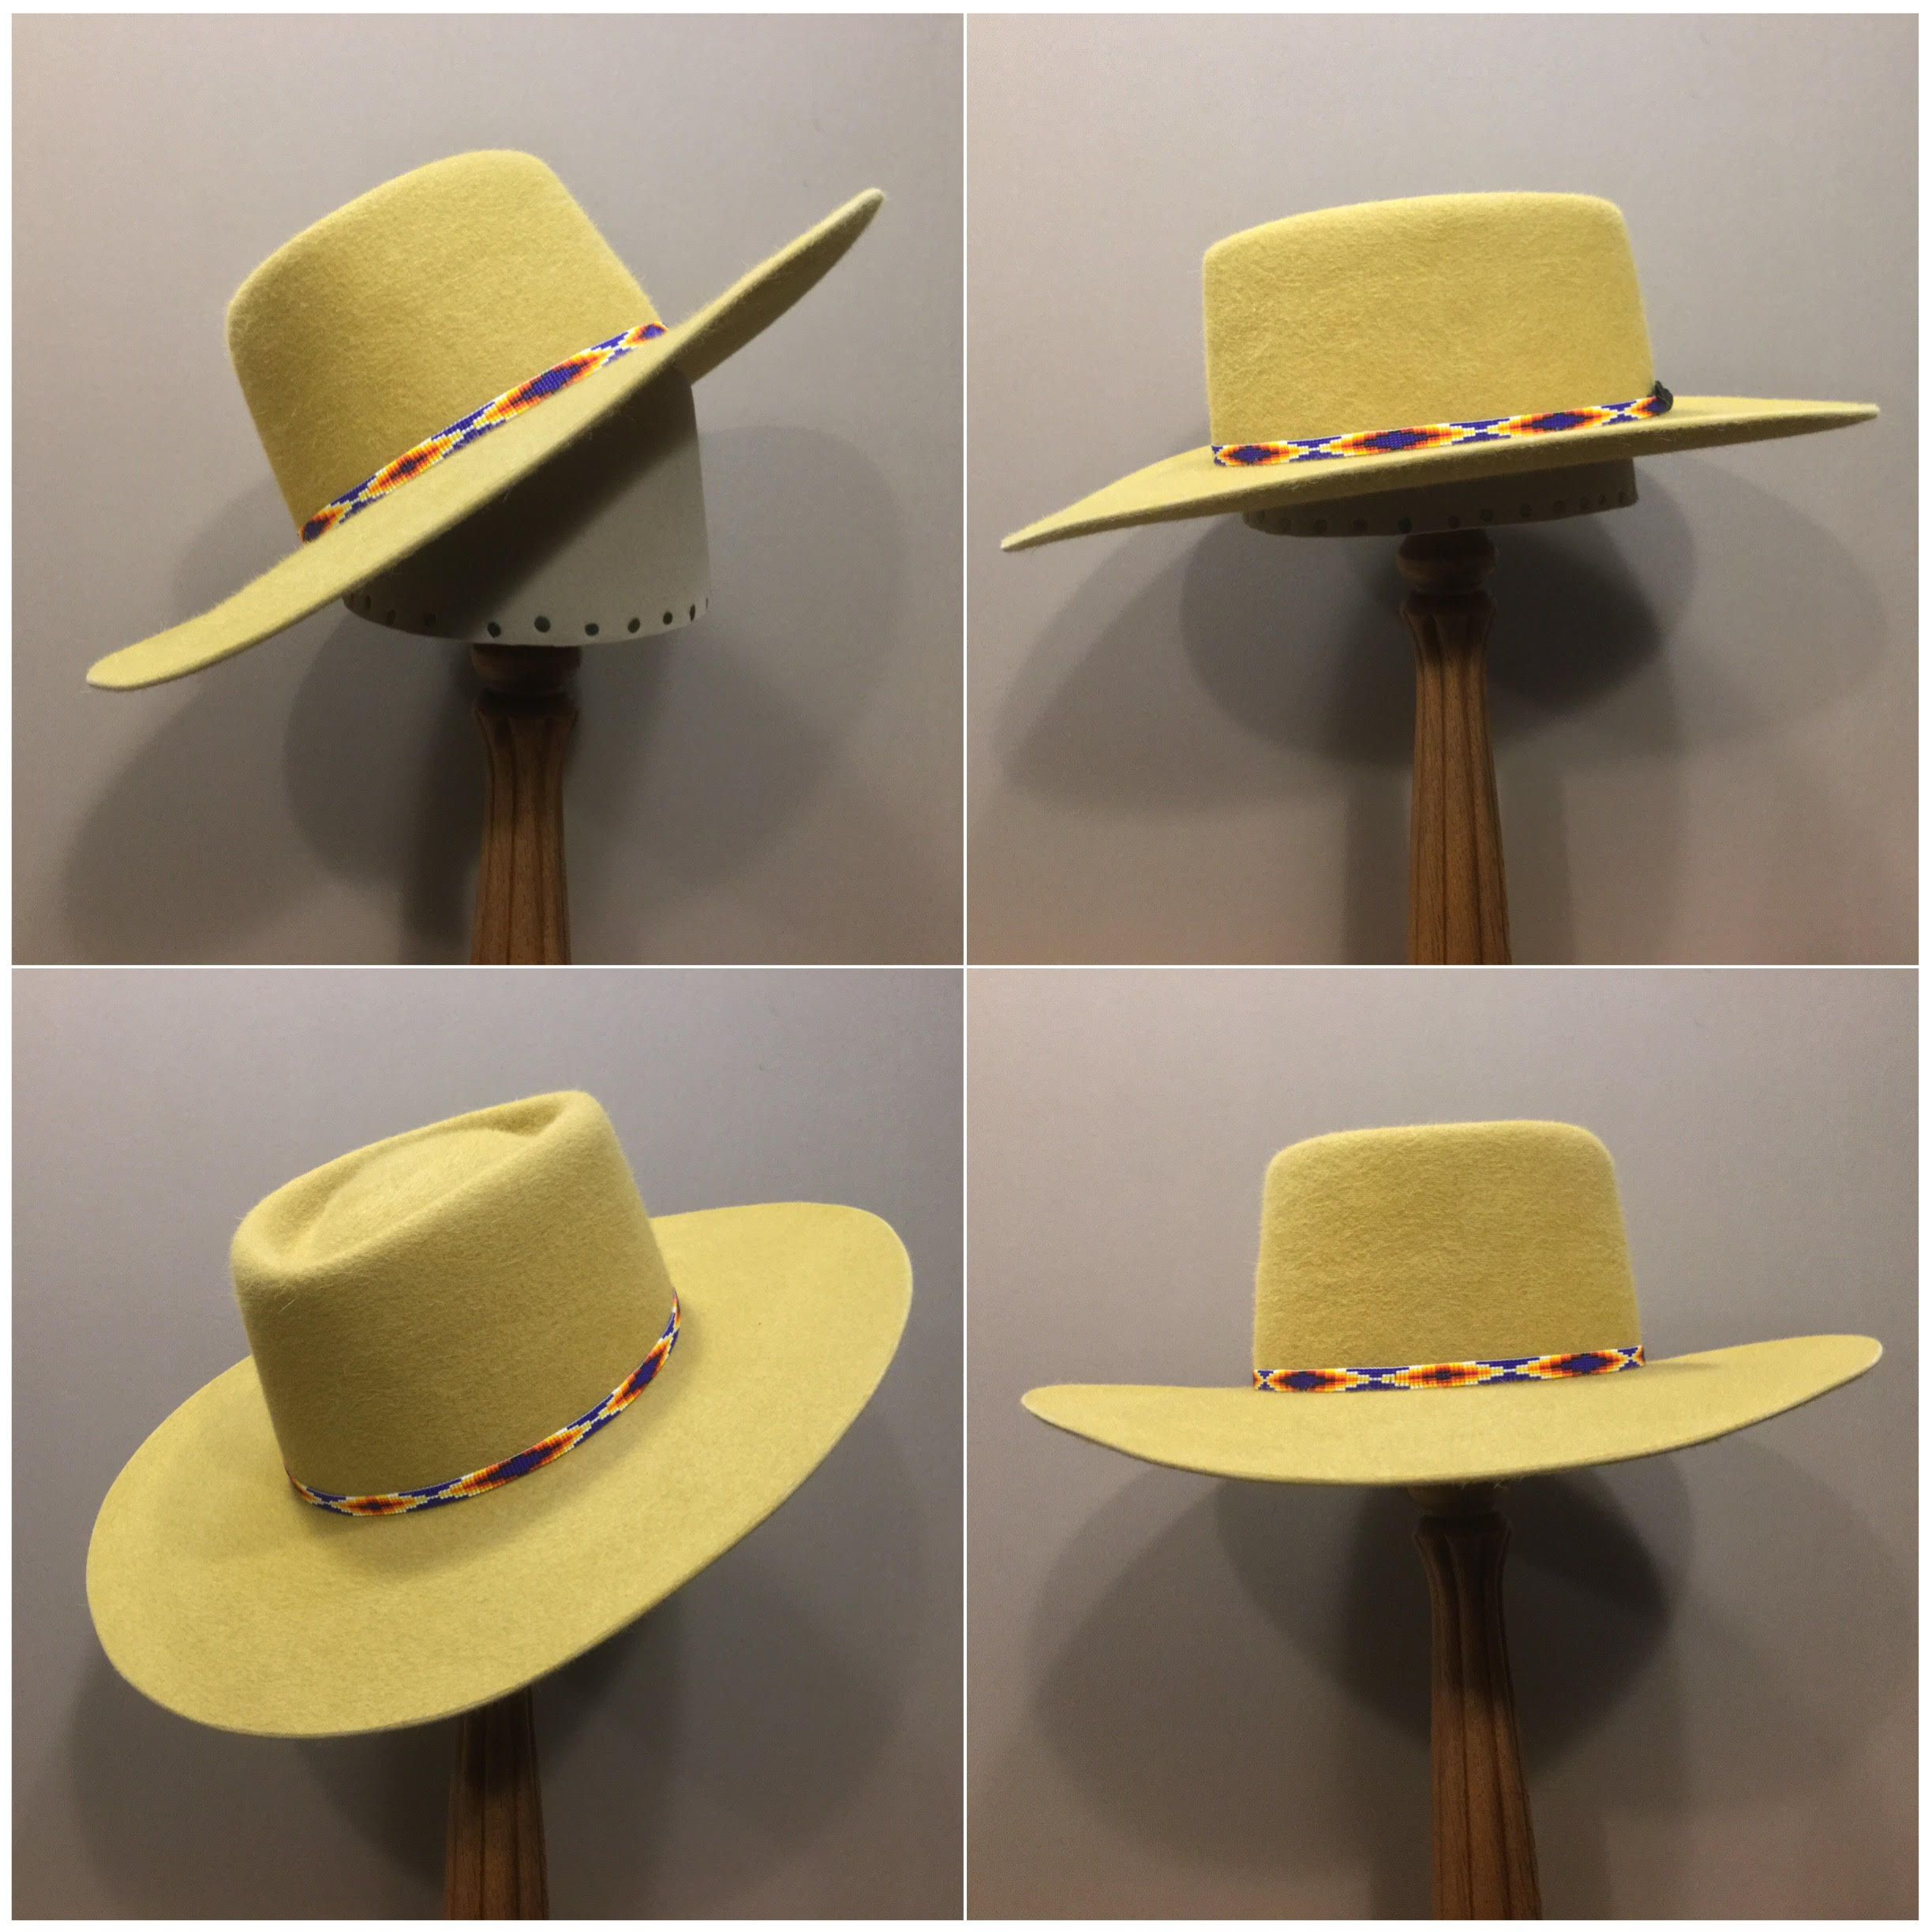 Material: 100% Rabbit Color: Gold Open Block: CH Brim Set: San Ann Trim: Beaded band